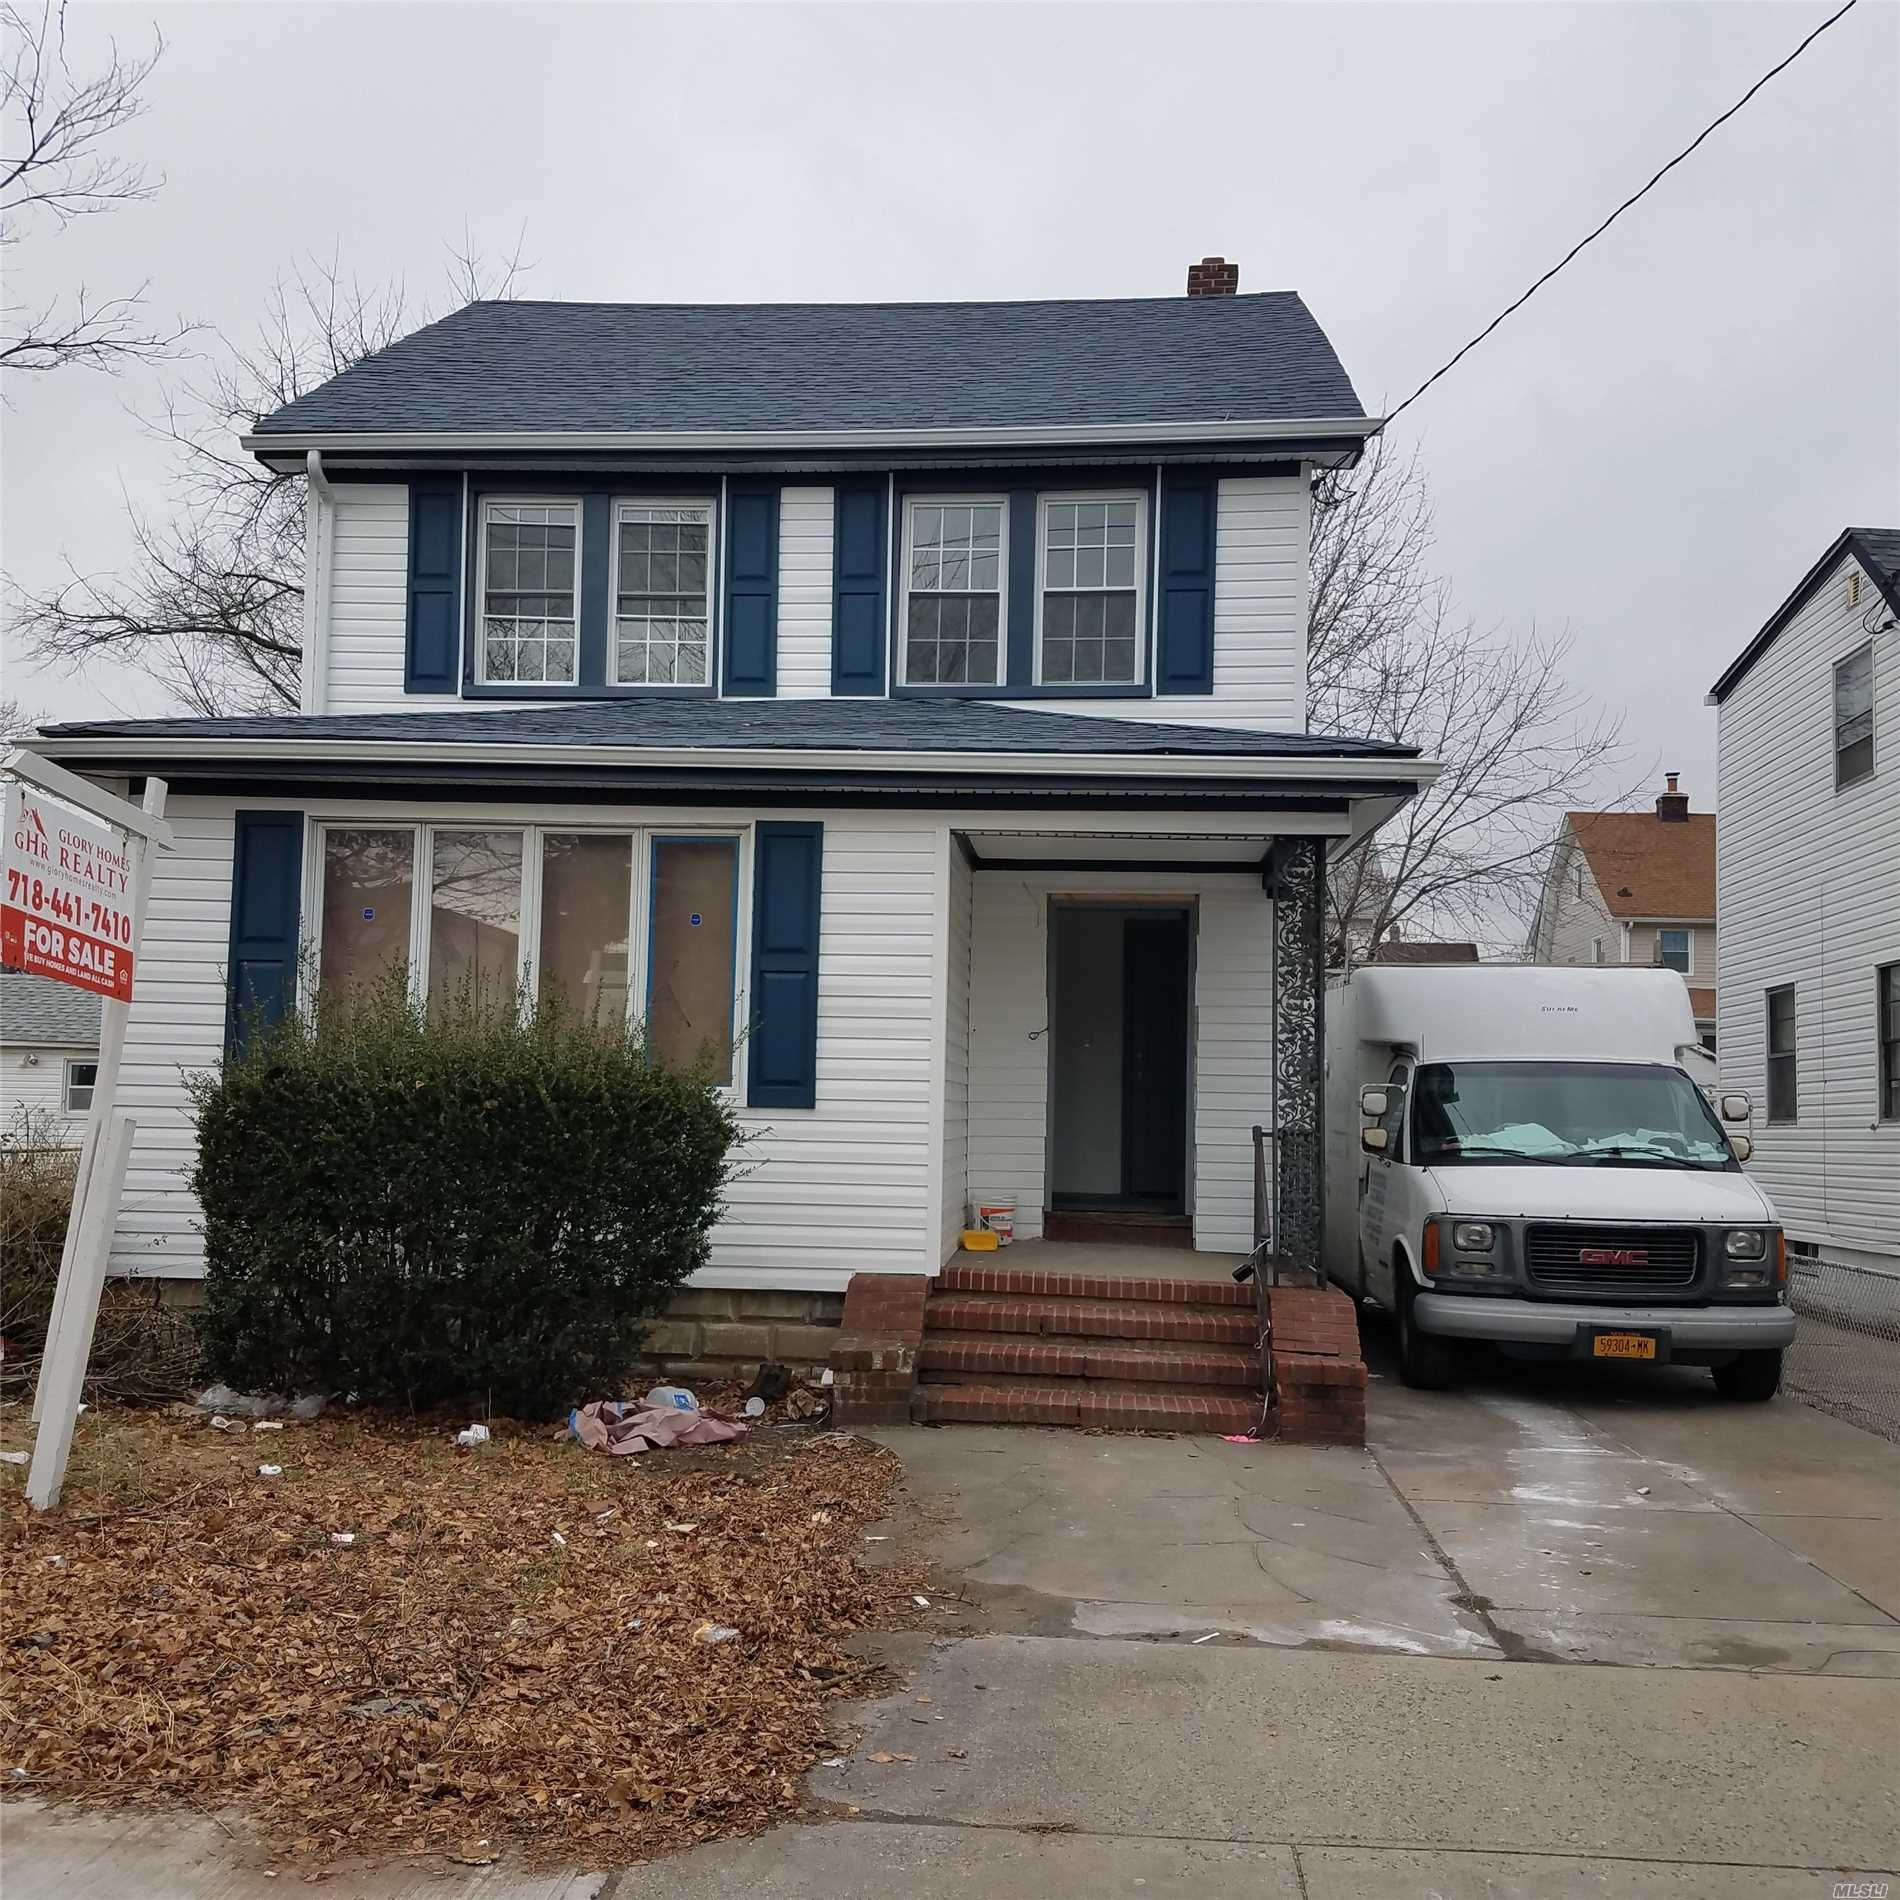 2 Family Detached 1st Floor - 3 Bedrooms, 1 Full Bath, Huge Kitchen 2nd Floor - 2 Bathrooms, 1 Full Bath Private Driveway Garage Full Finished Basement With Separate Entrance Big Backyard Lot 40X100 Very Quiet Block Fully Renovated